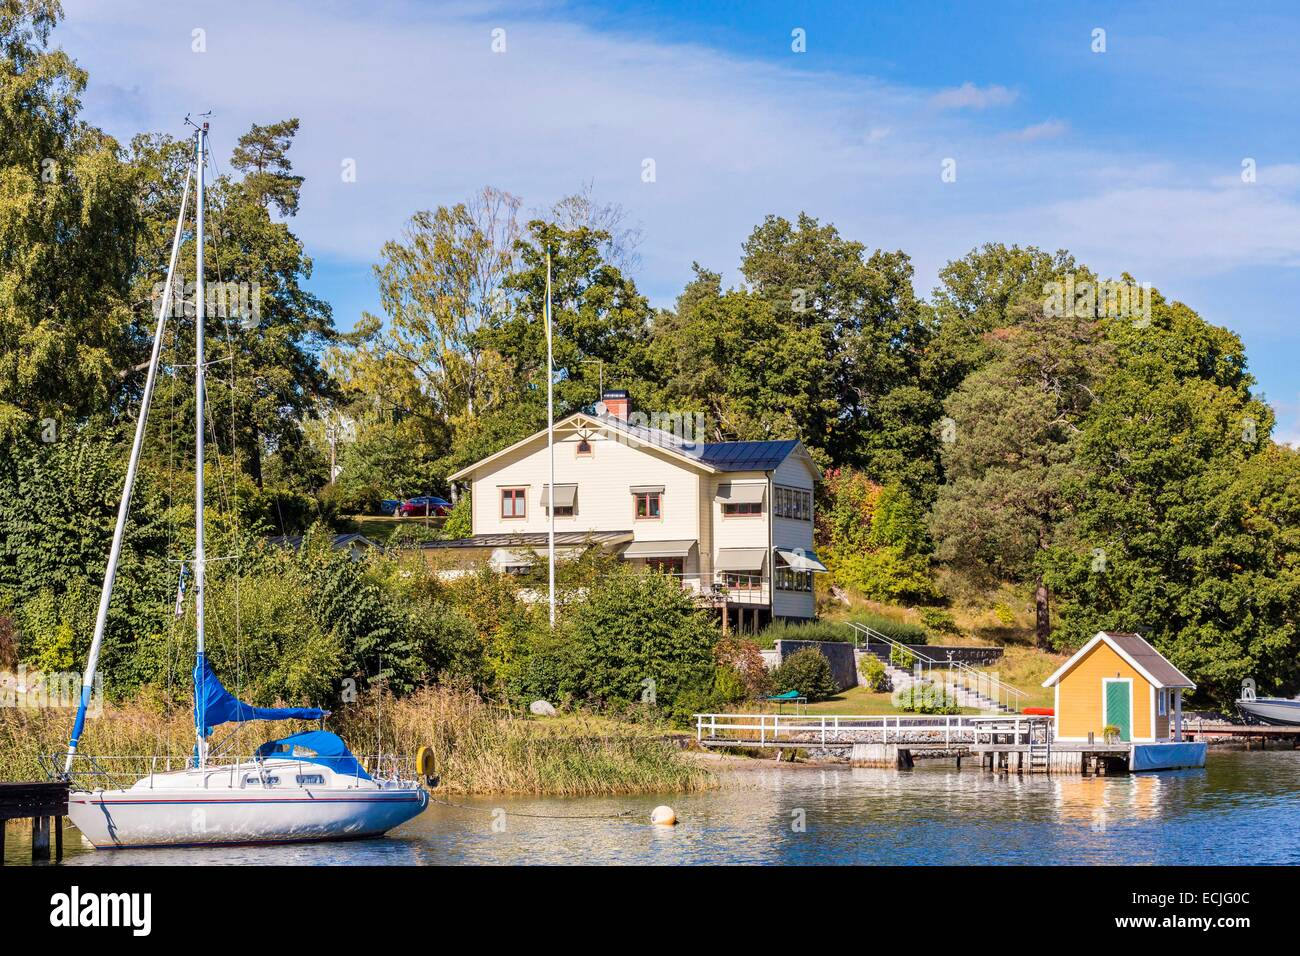 Sweden, Stockholm, Stockholm archipelago is one of the largest in the entire Baltic Sea and includes 30,000 islands, - Stock Image